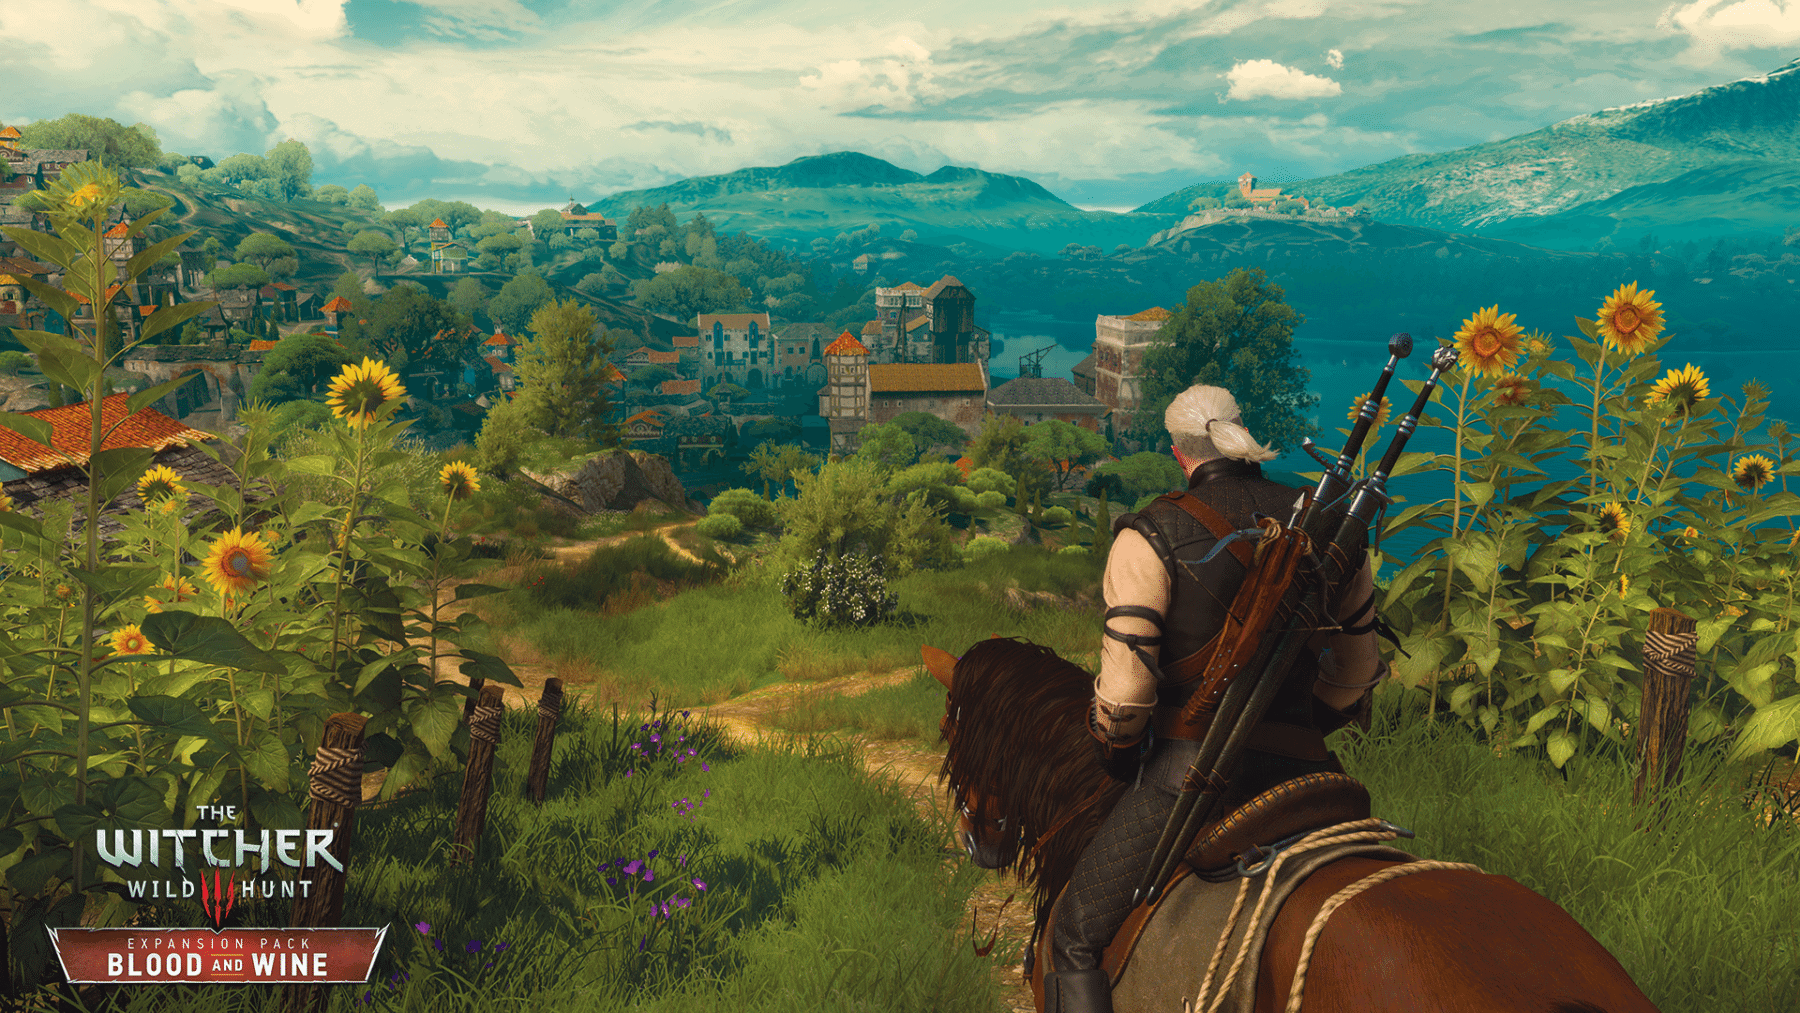 The Witcher 3 Pic 5.png